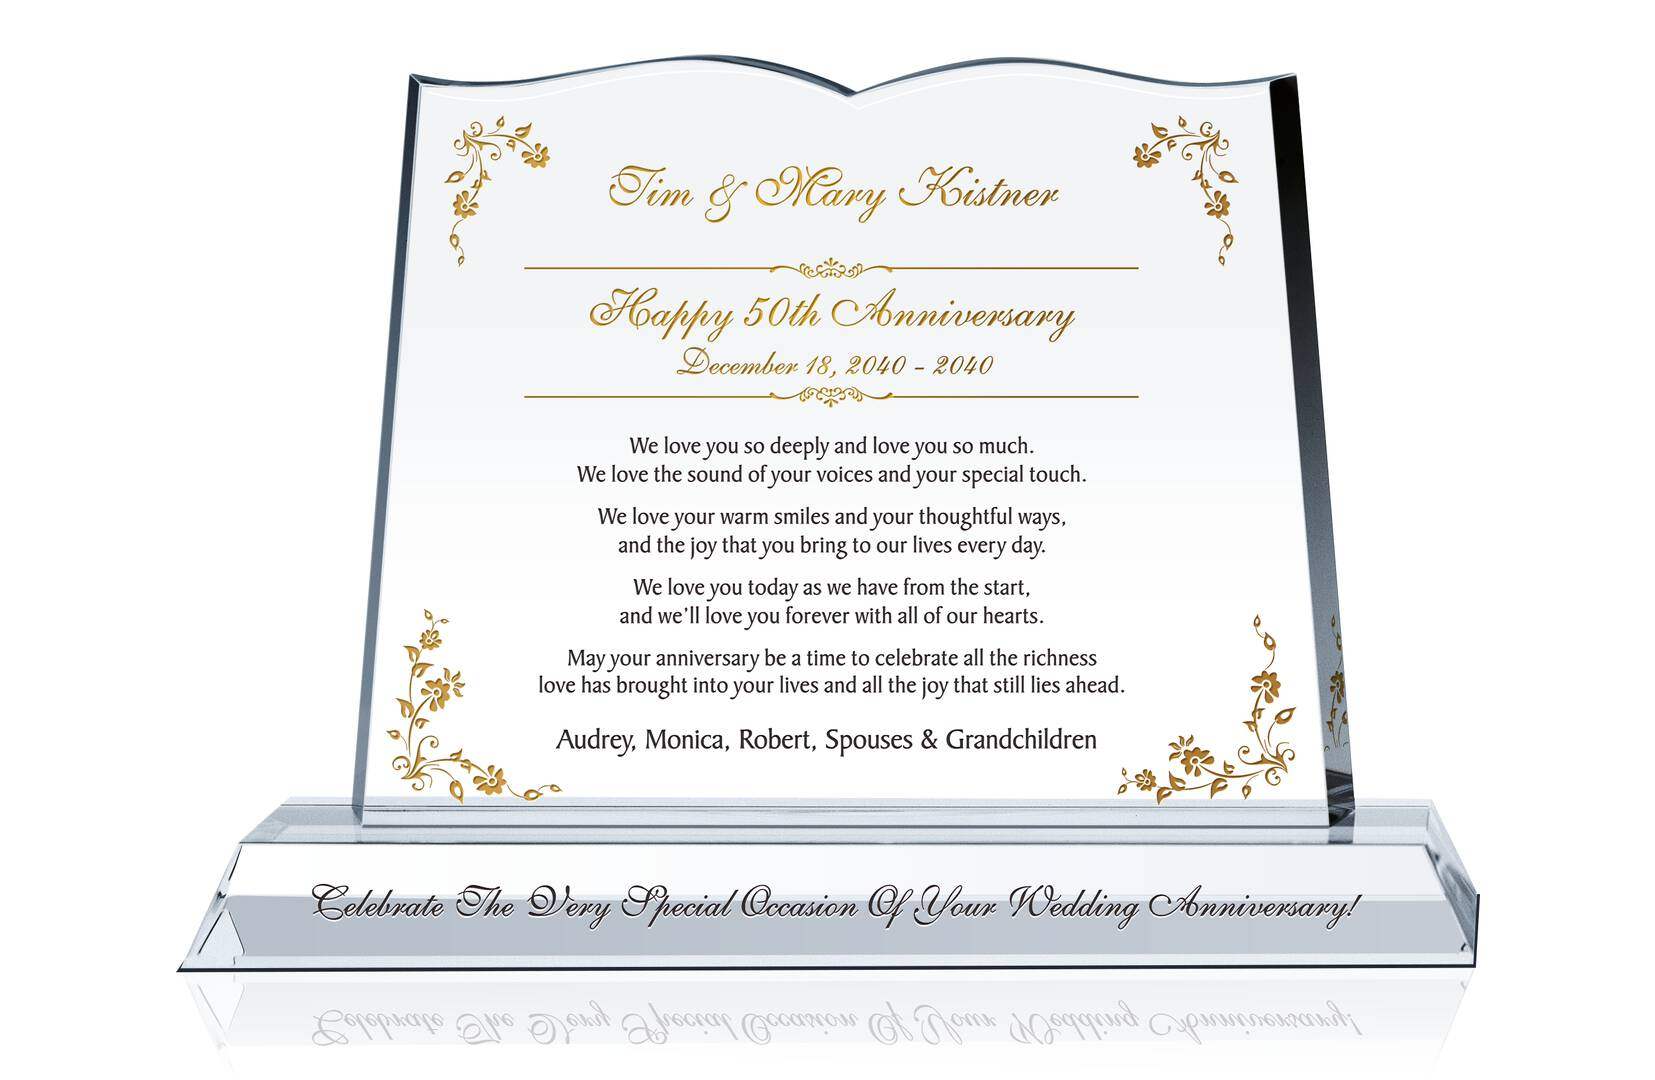 Wedding Anniversary Gifts For Couples: 50th Wedding Anniversary Gift For Couple